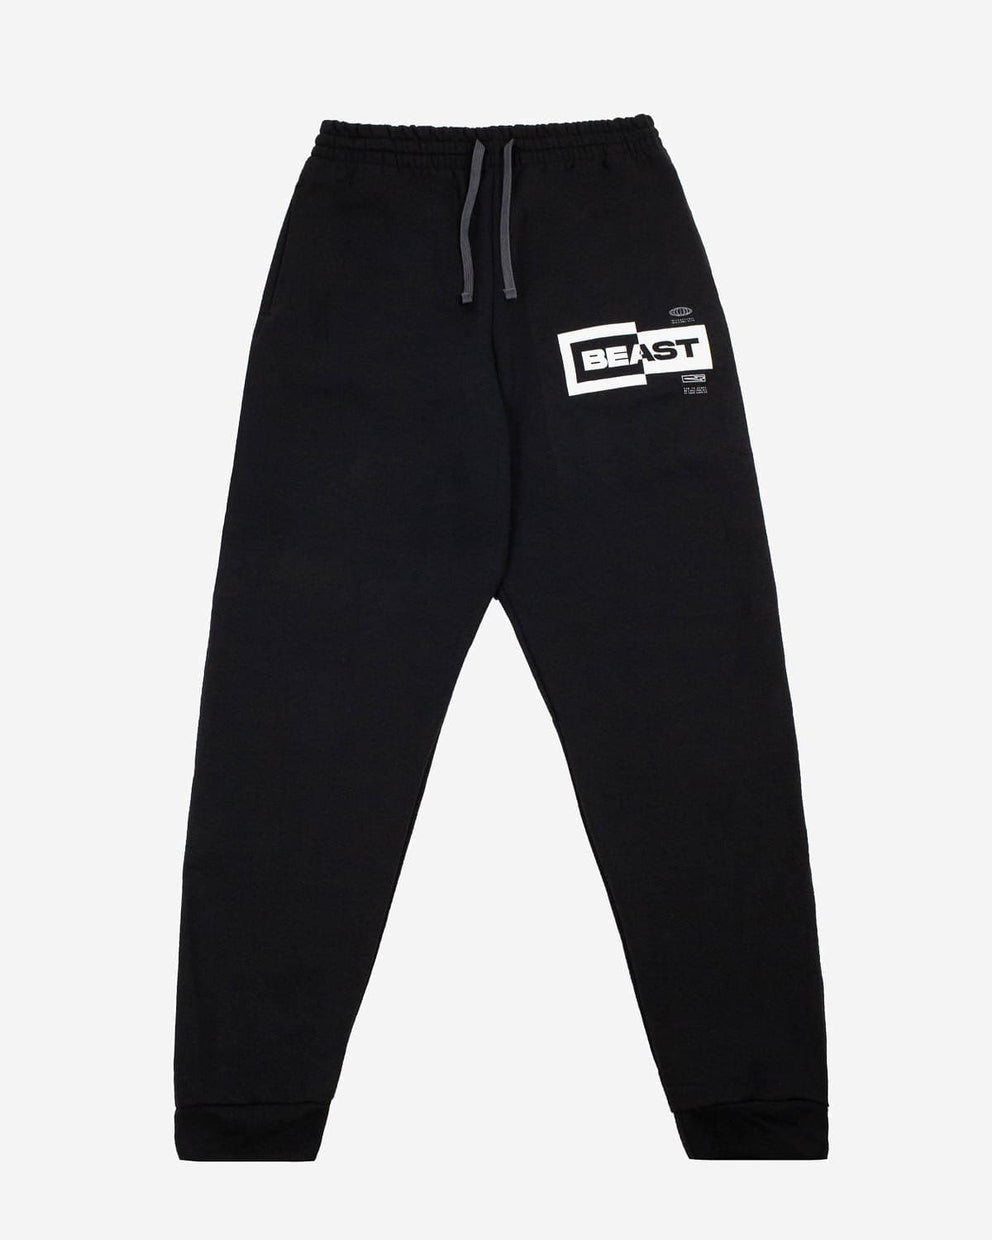 Beast Inverted Box Logo Joggers